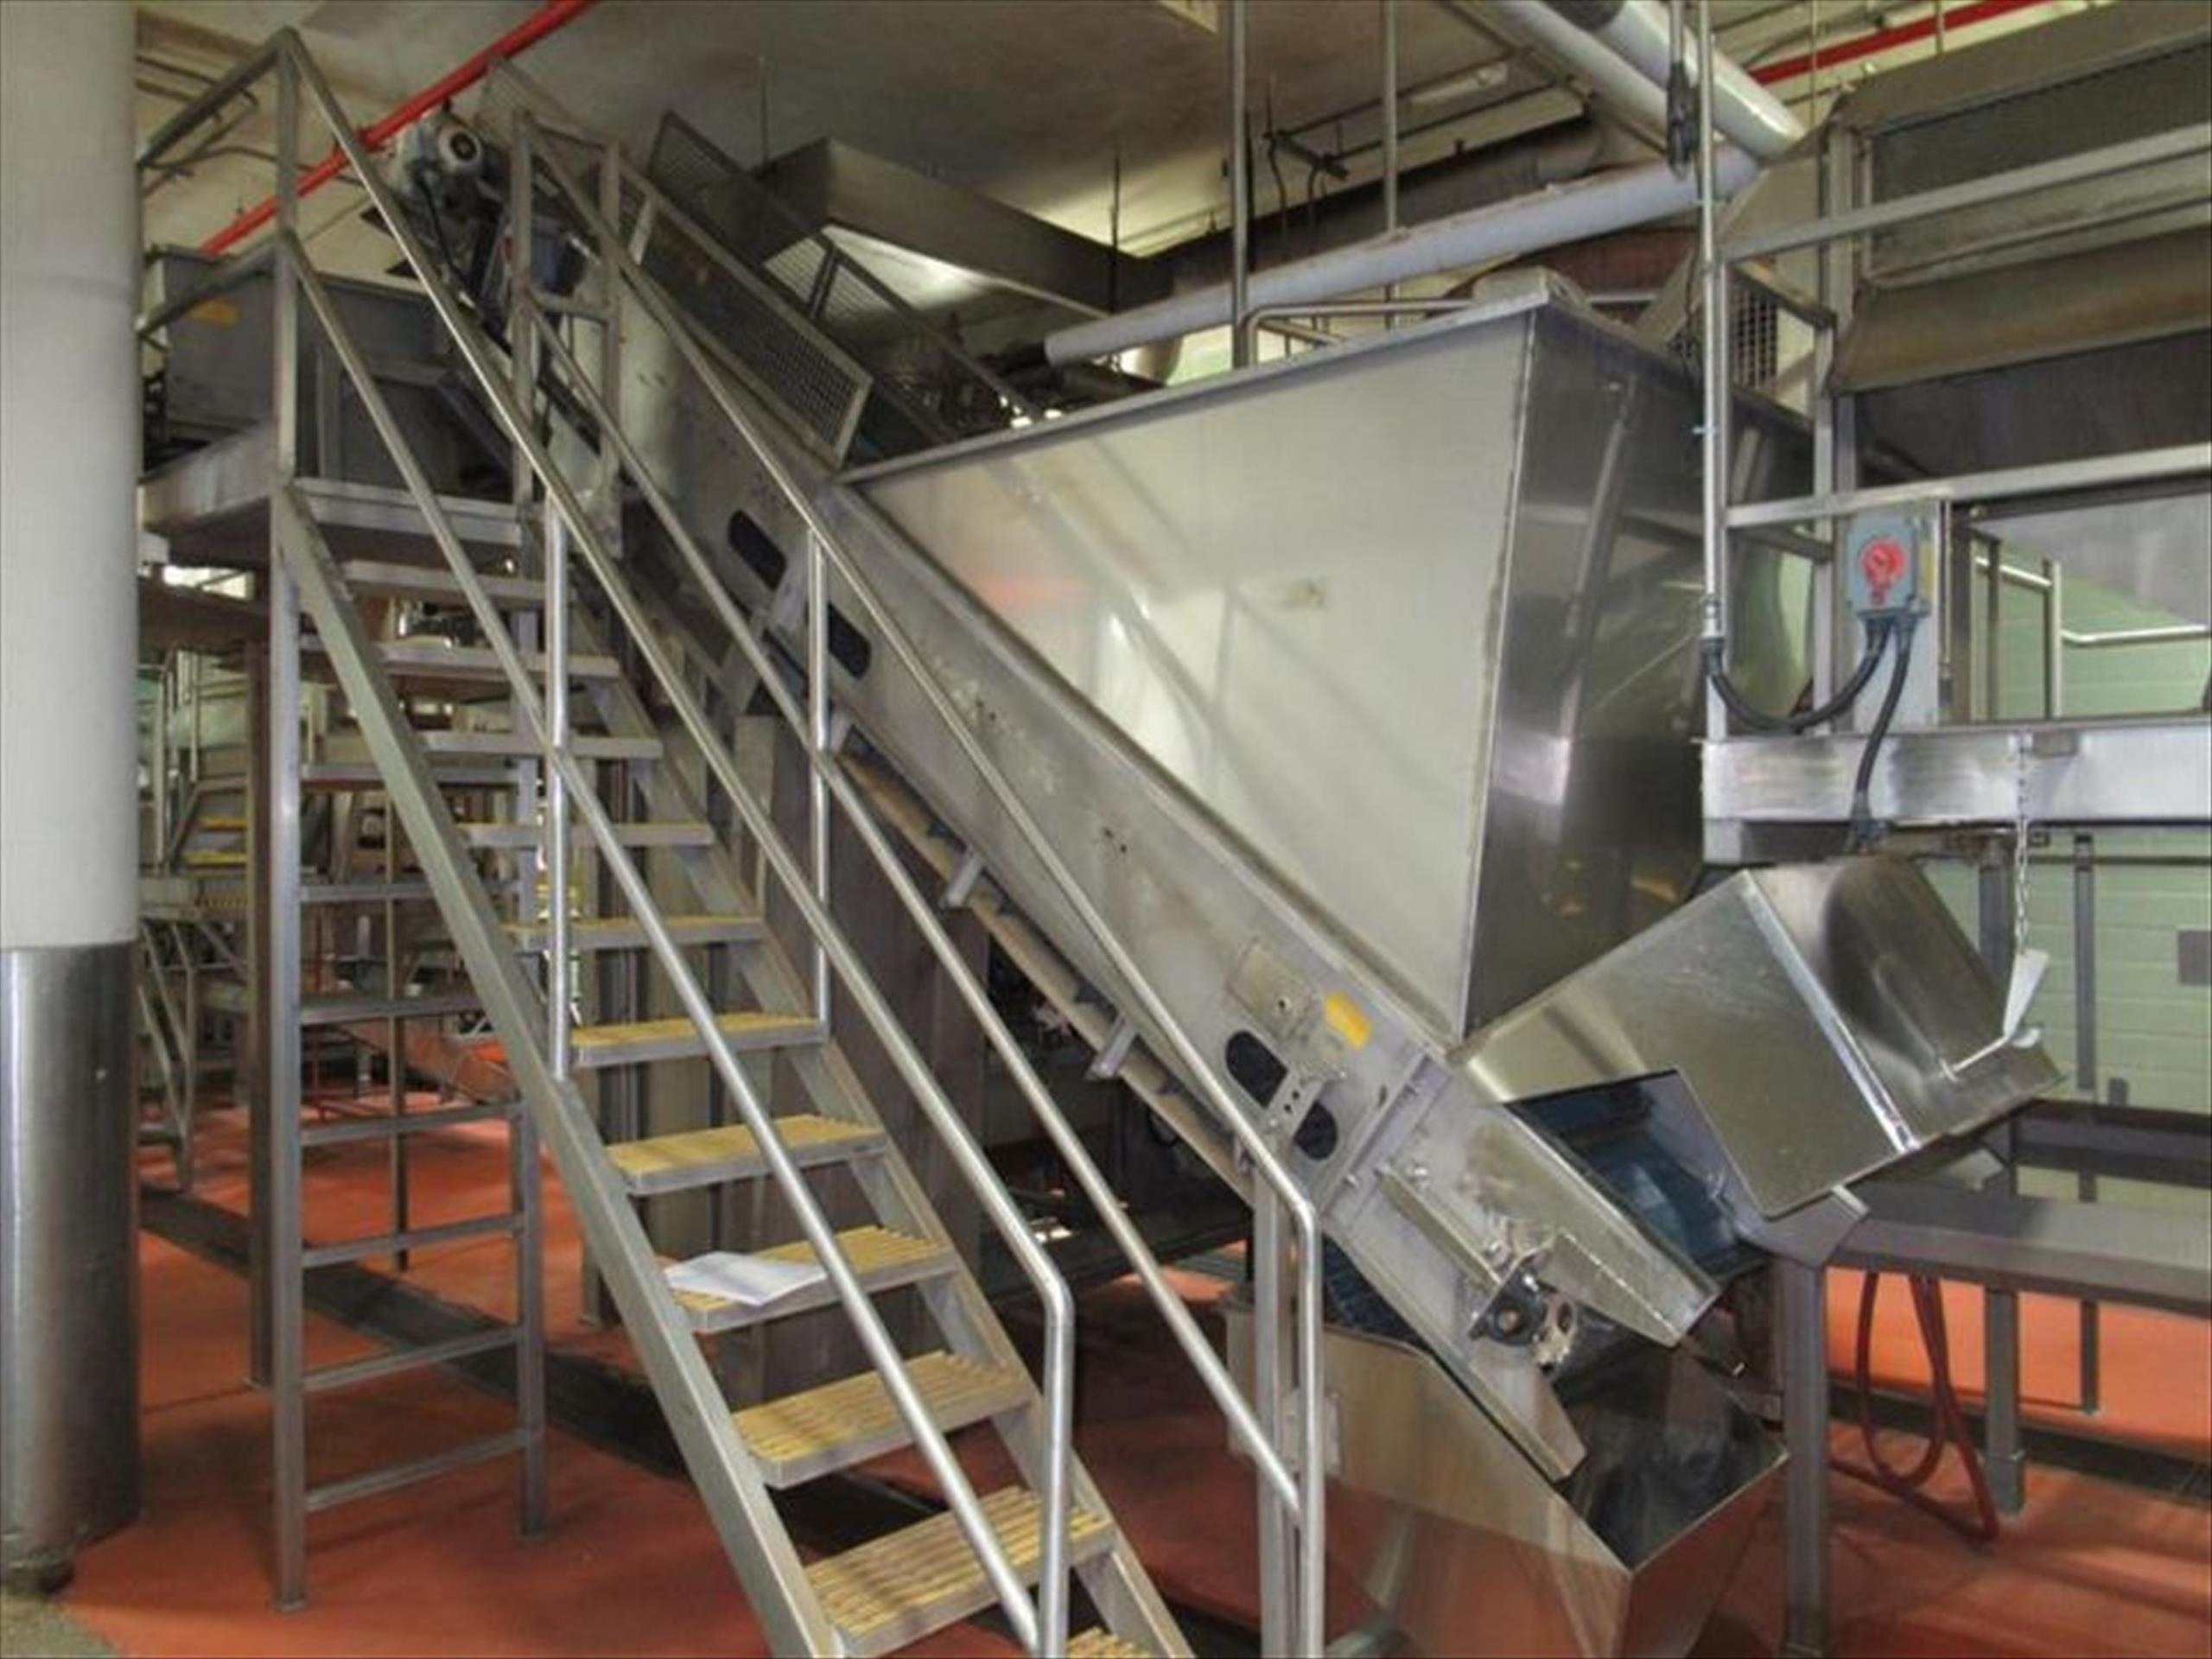 Thermoplastic hopper elevator conveyor approx 24 in w x 13 ft l x 14 ft h with flighted modular belt